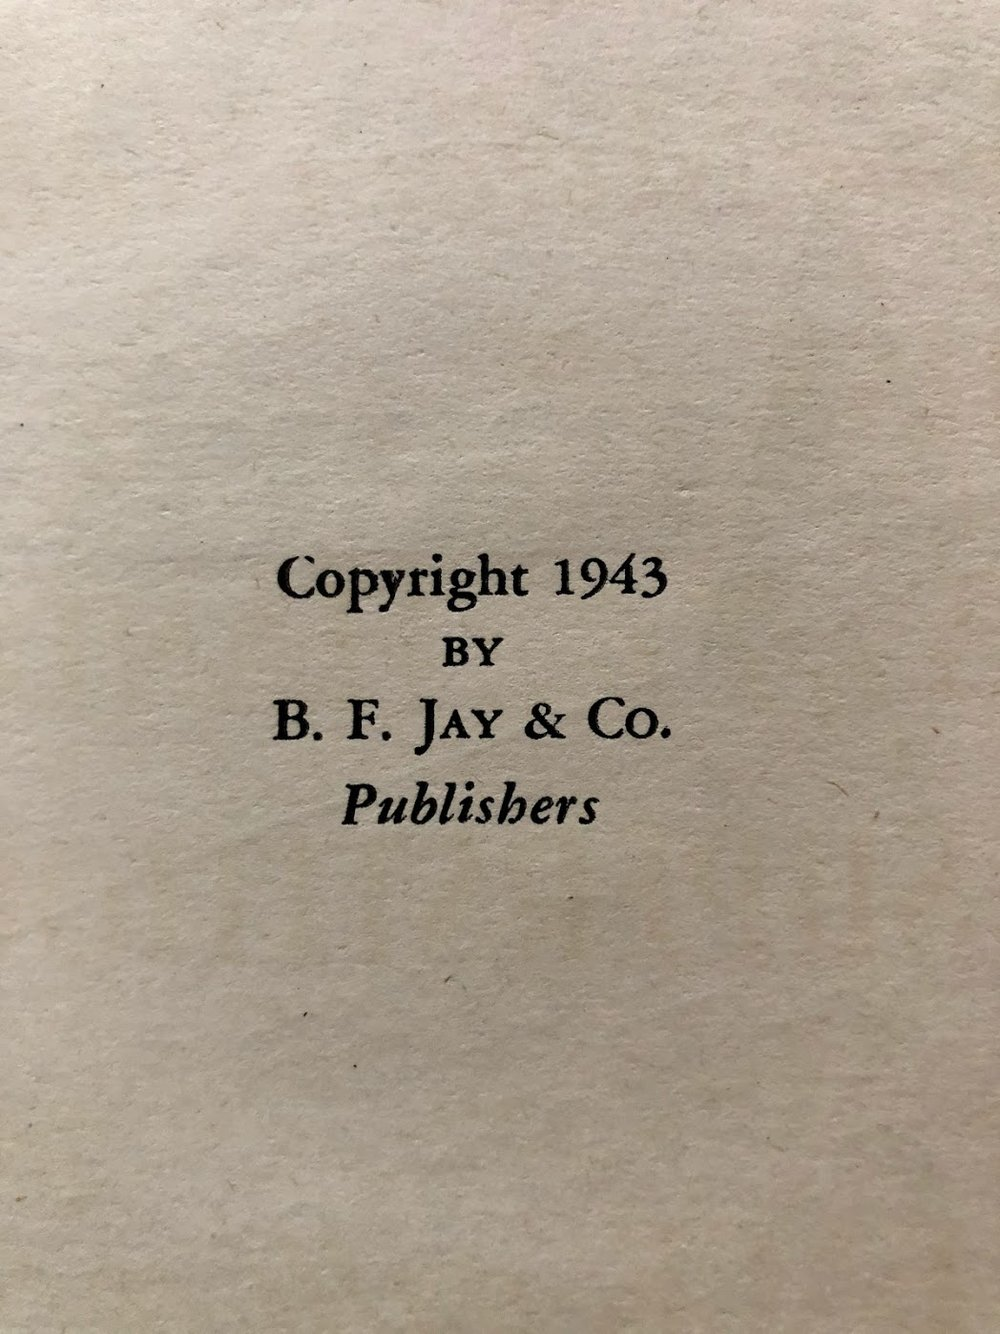 Note Copyright Year